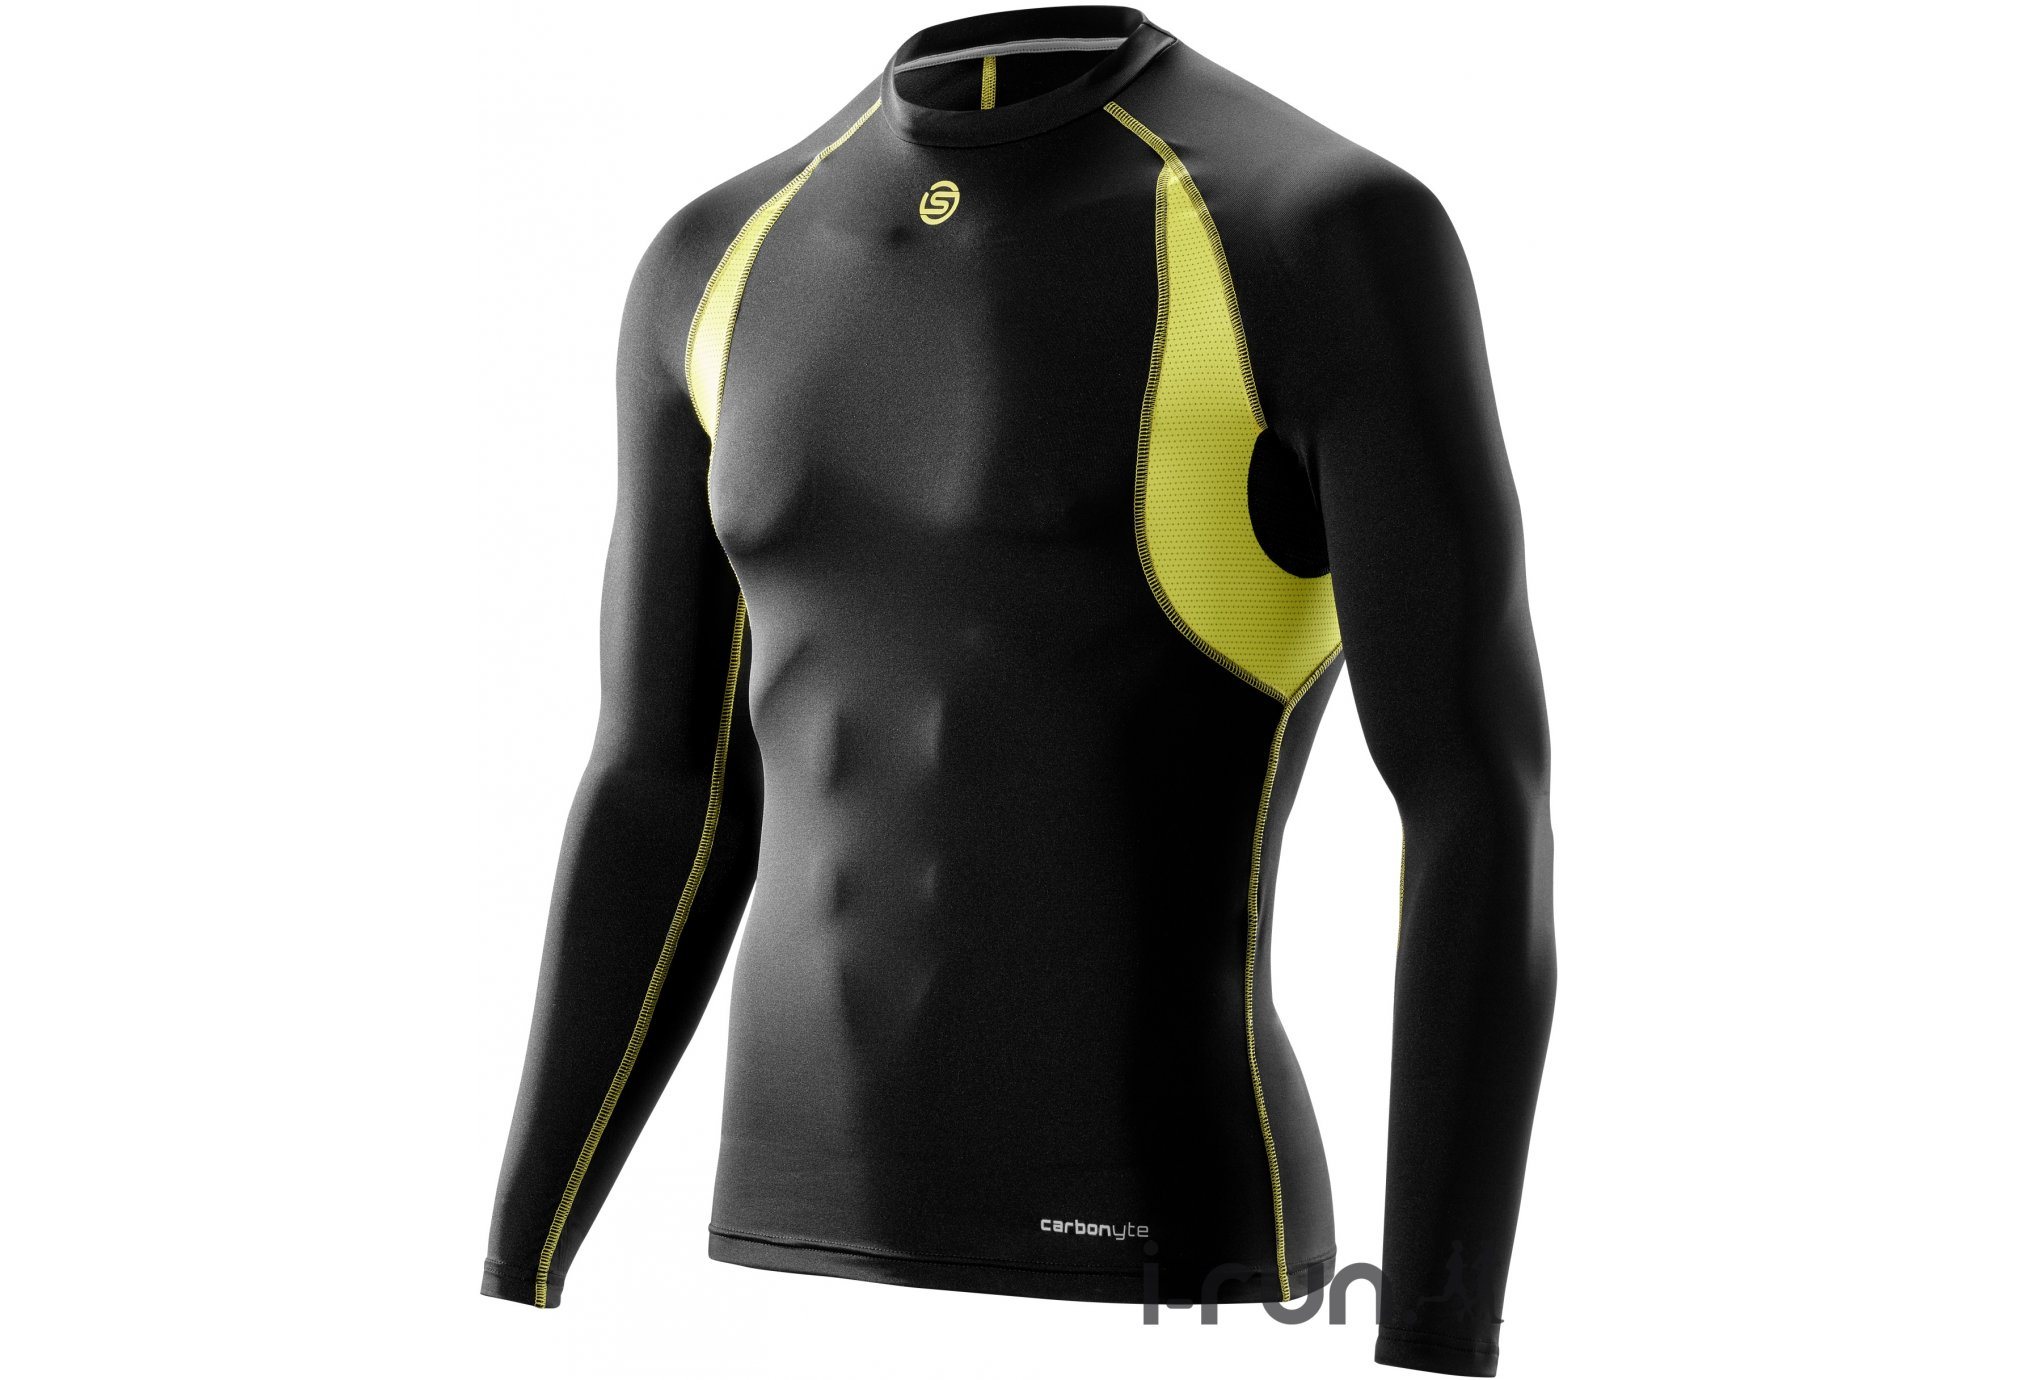 Skins Tee-shirt Carbonyte Baselayer M vêtement running homme